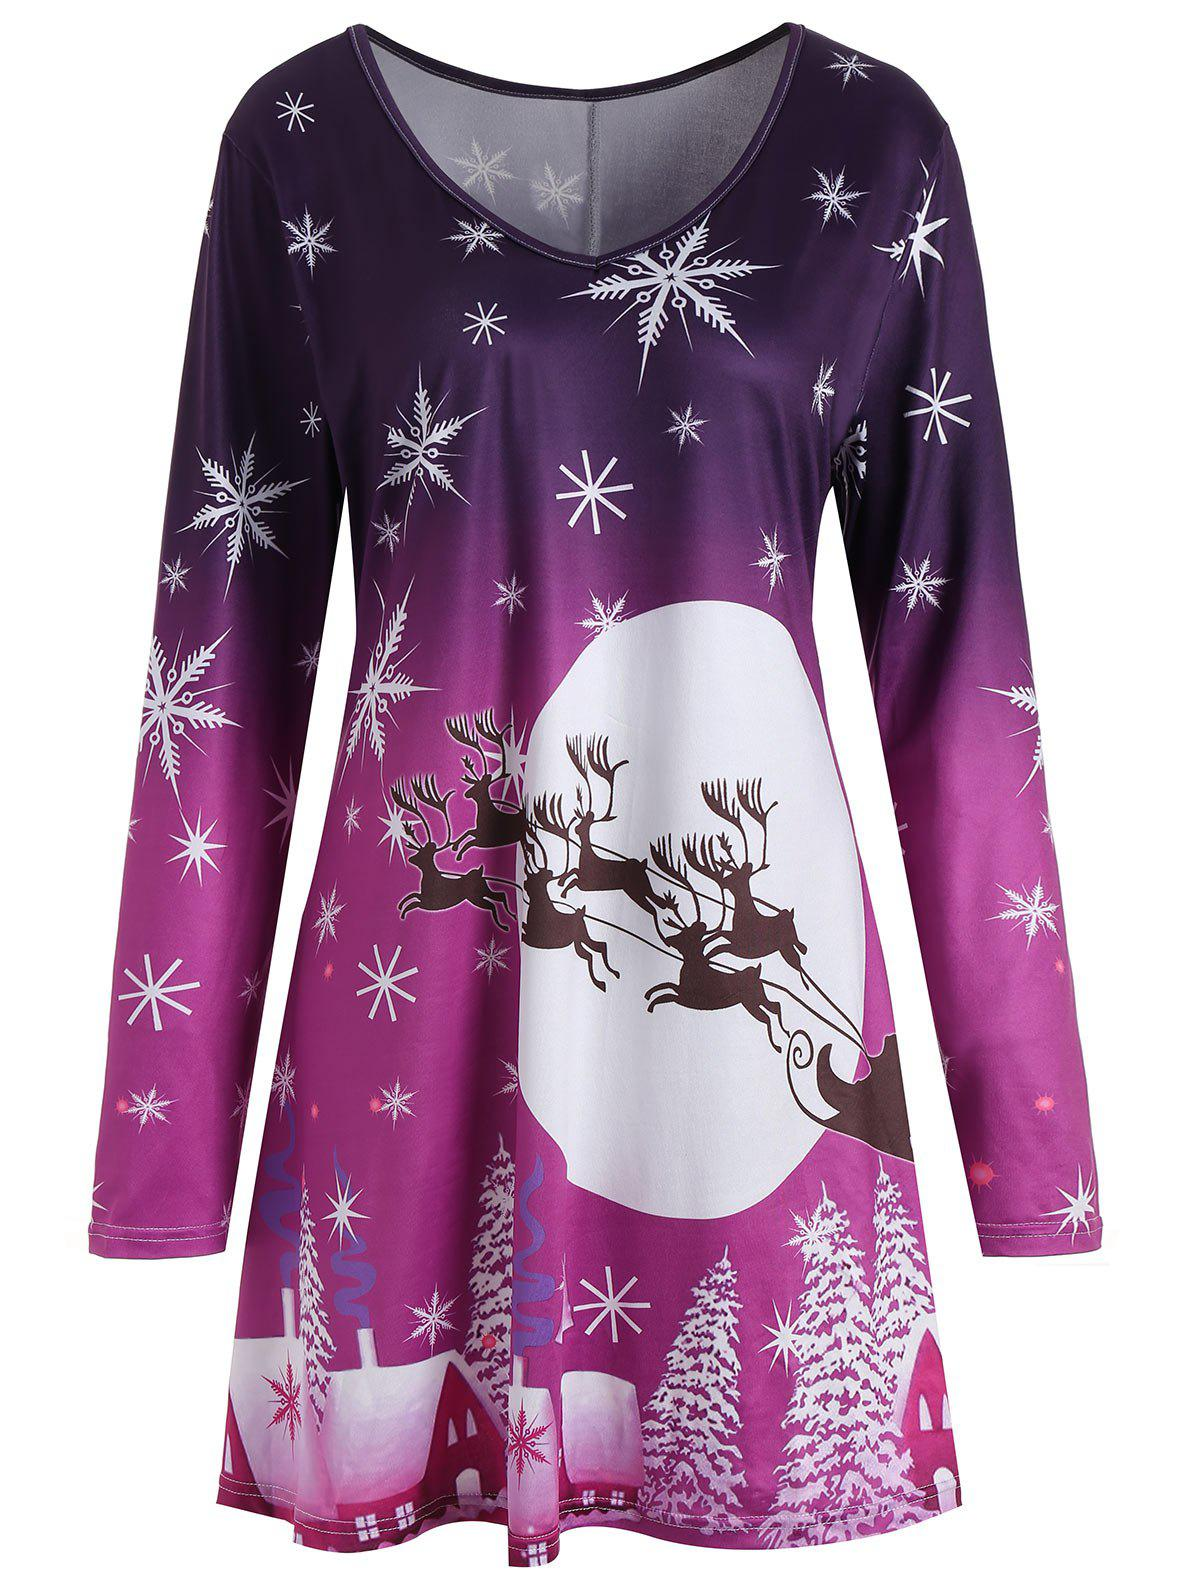 Christmas Snowflake Sled Moon Print Plus Size T Shirt DressWOMEN<br><br>Size: 2XL; Color: PURPLE; Style: Casual; Material: Polyester; Silhouette: A-Line; Dresses Length: Mini; Neckline: V-Neck; Sleeve Length: Long Sleeves; Pattern Type: Animal,Moon,Plant; With Belt: No; Season: Fall,Spring,Winter; Weight: 0.2500kg; Package Contents: 1 x Dress;